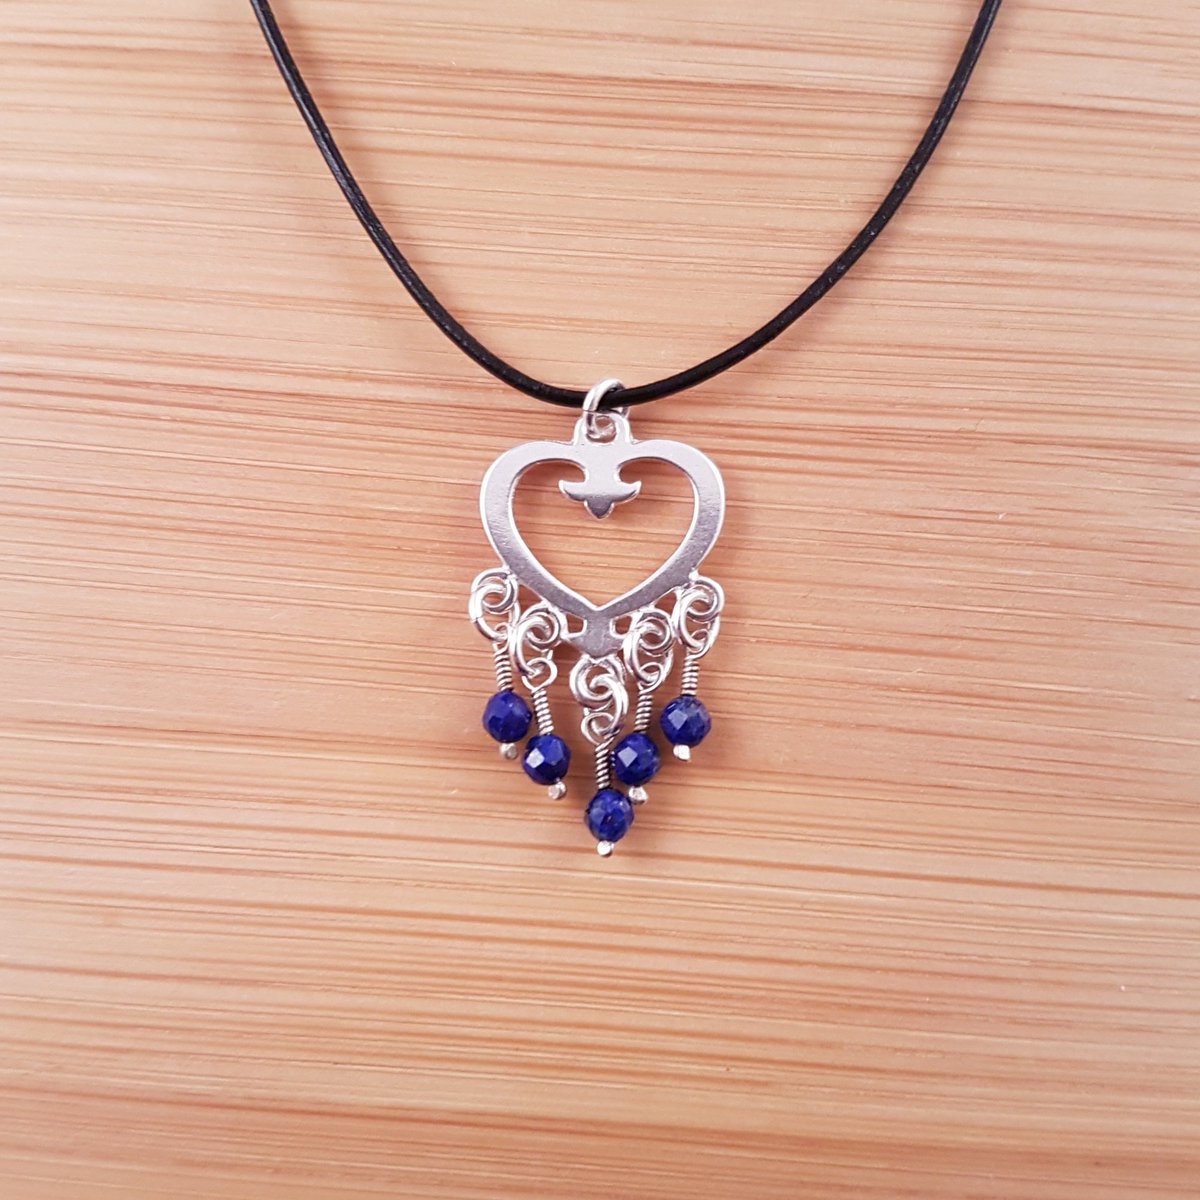 Lapis lazuli and silver heart pendant